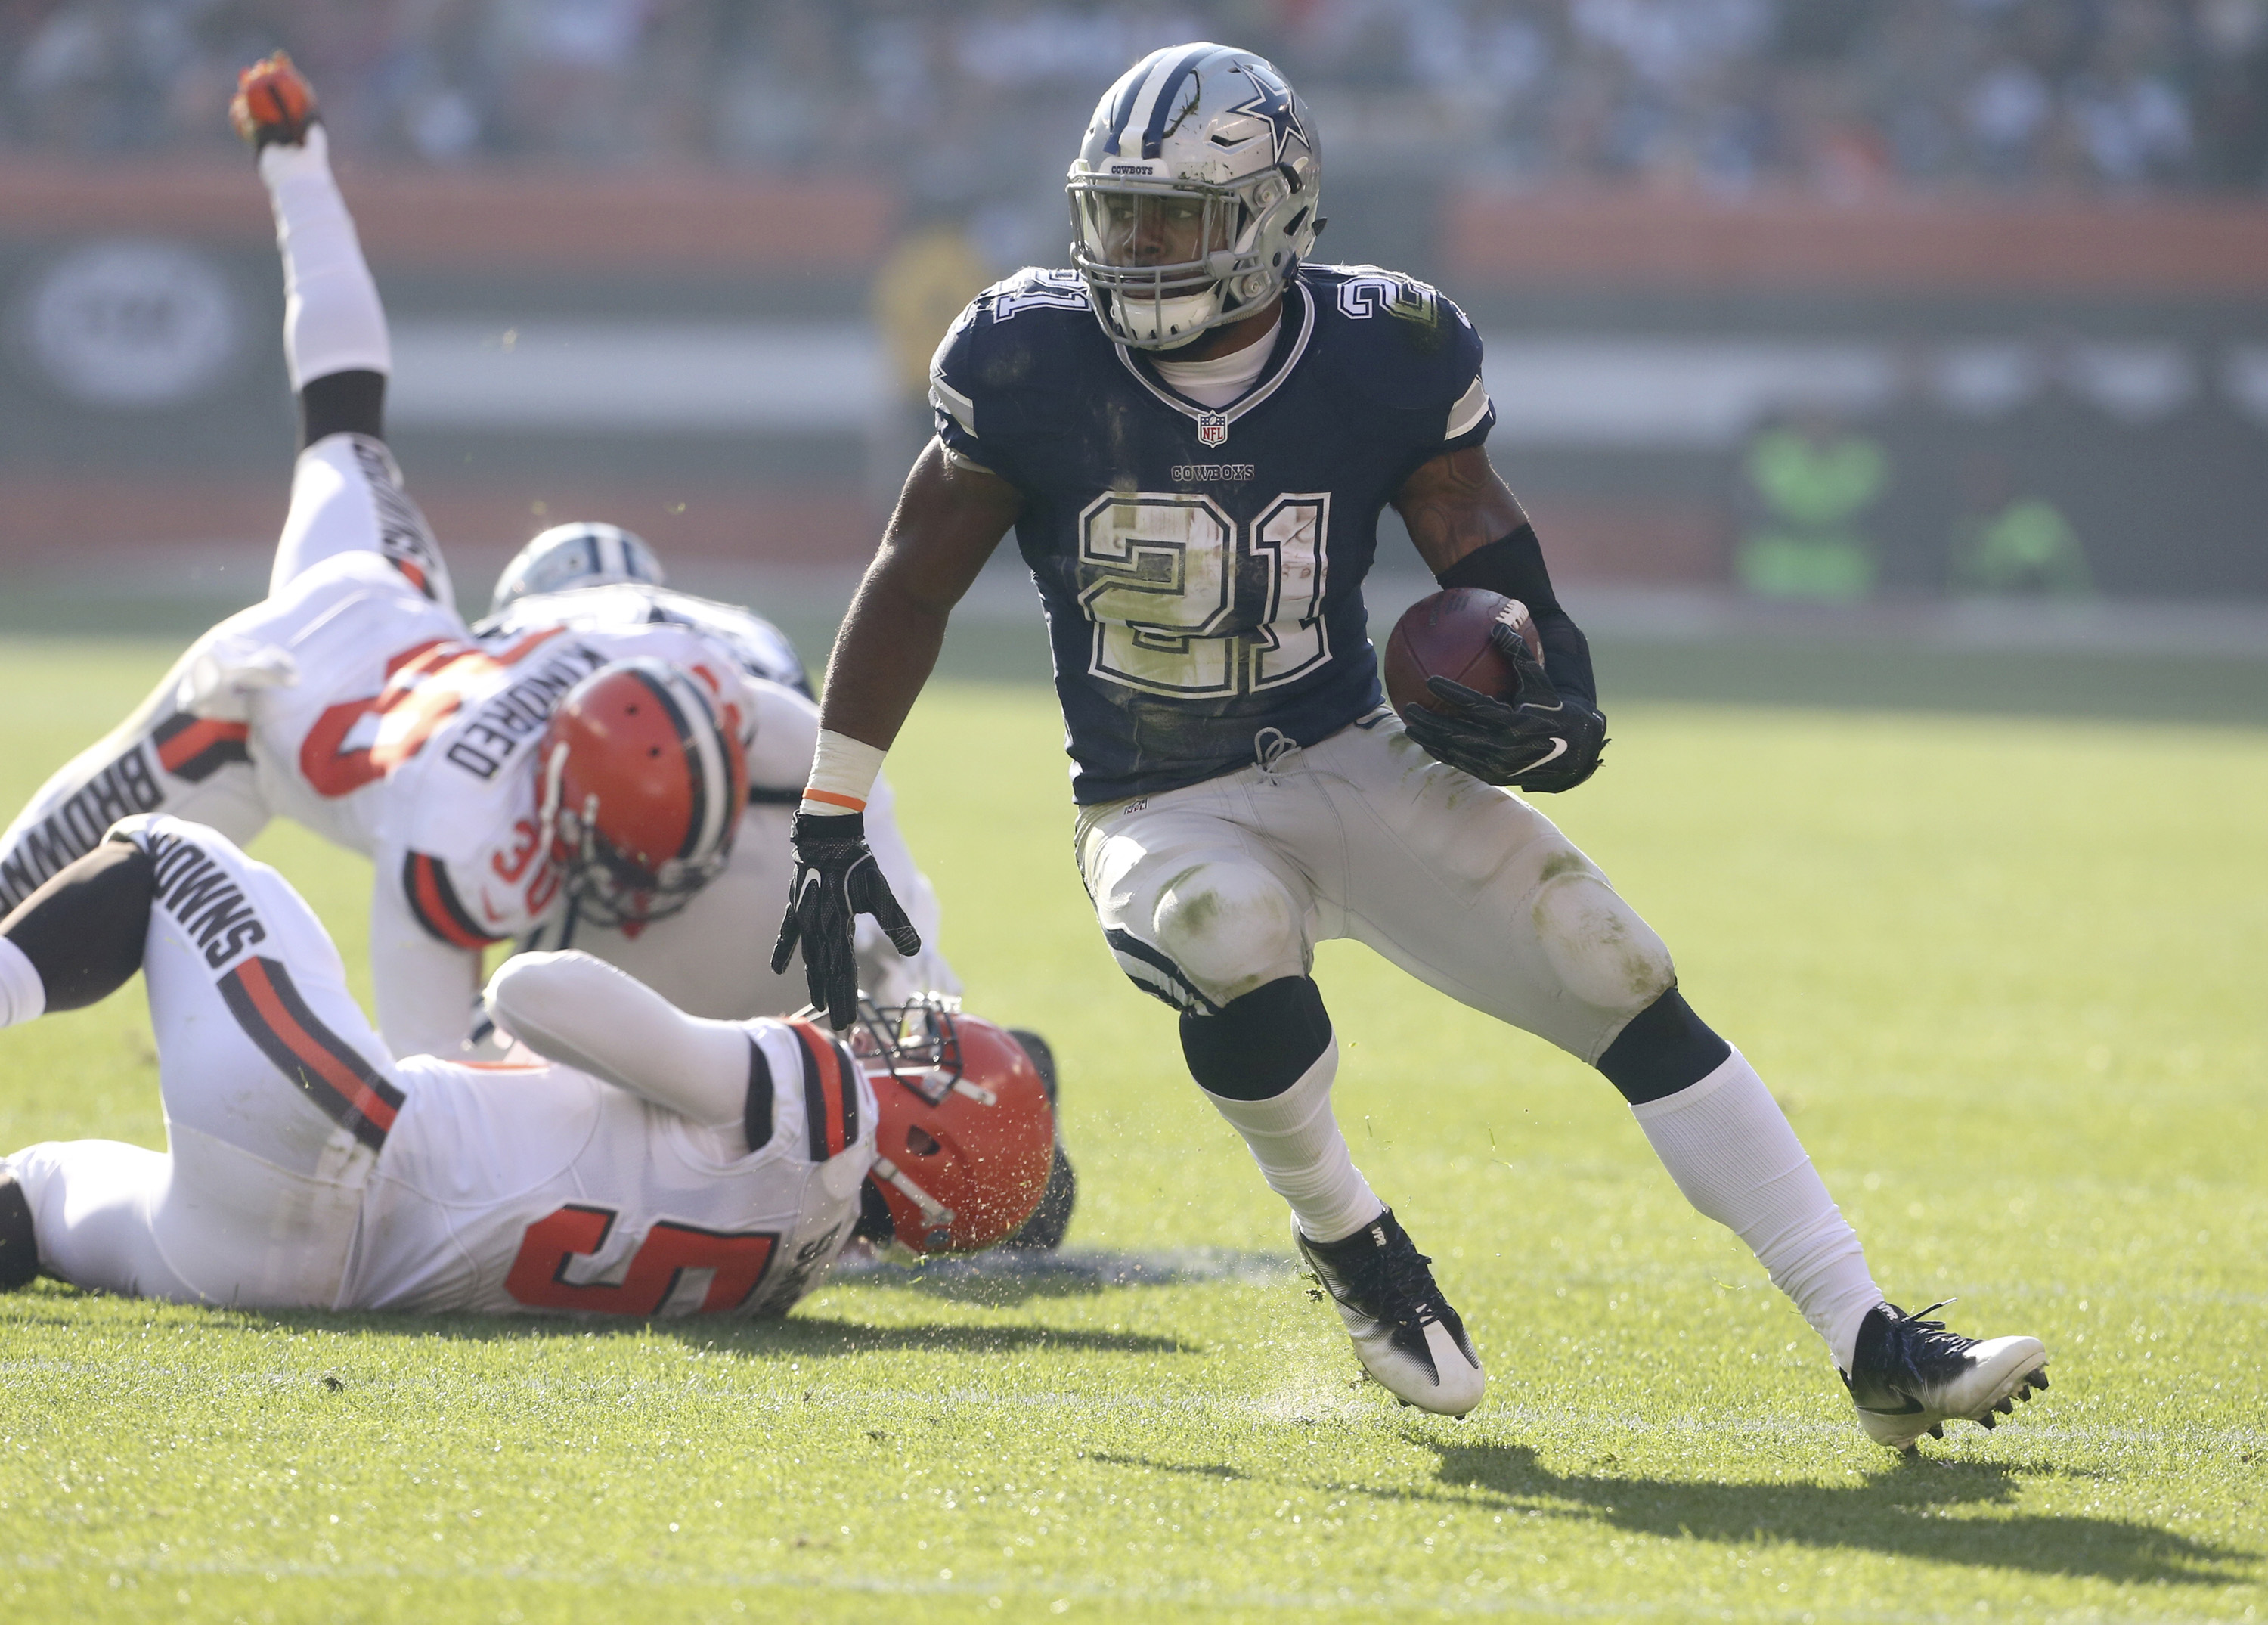 Dallas Cowboys' Ezekiel Elliott gets past a host of Cleveland Browns defenders during a second quarter run on Sunday, Nov. 6, 2016 at FirstEnergy Stadium in Cleveland, Ohio. The Cowboys won the game 35-10. (Phil Masturzo/Akron Beacon Journal/TNS)